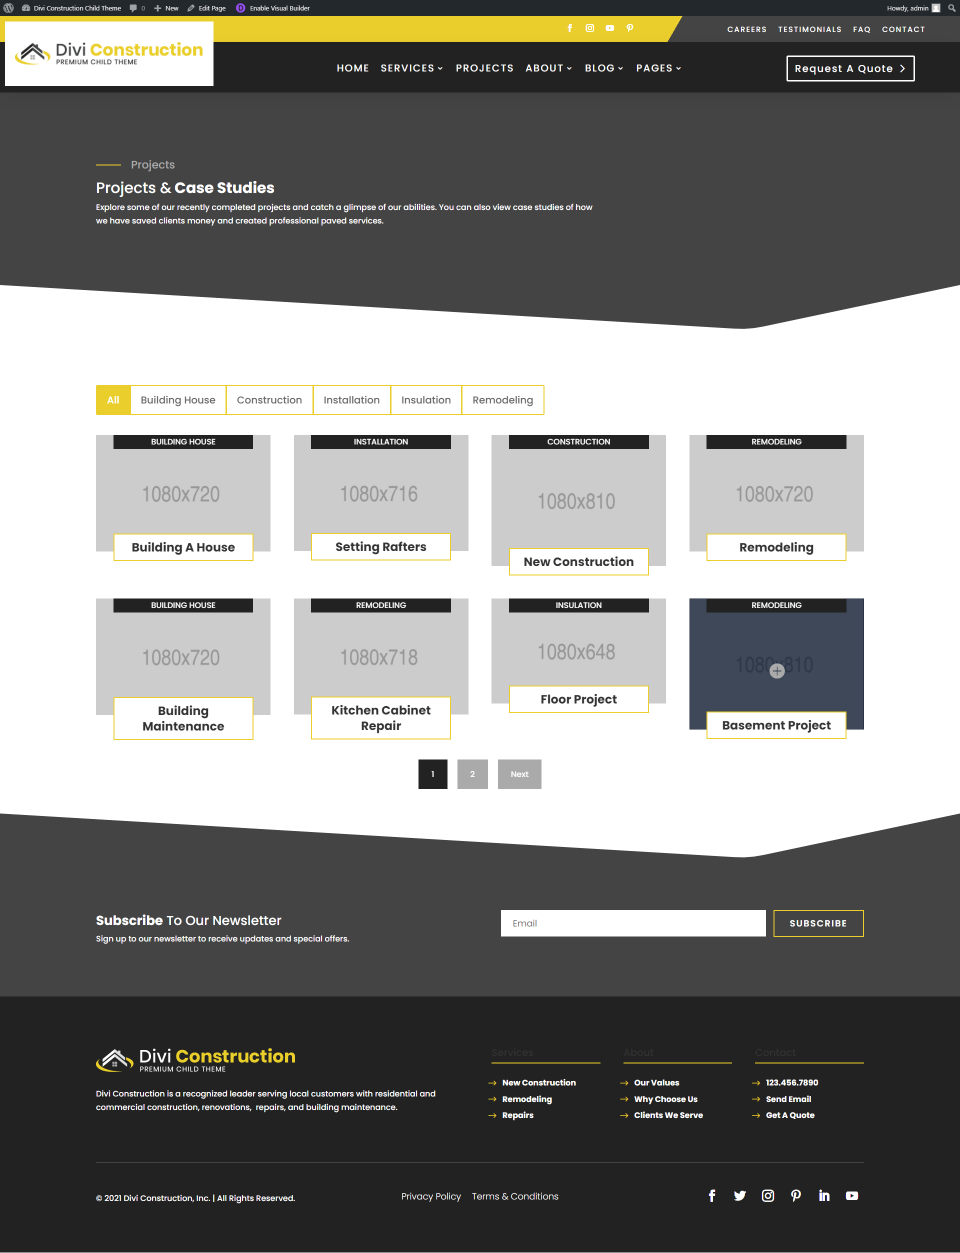 Divi Construction Projects Page